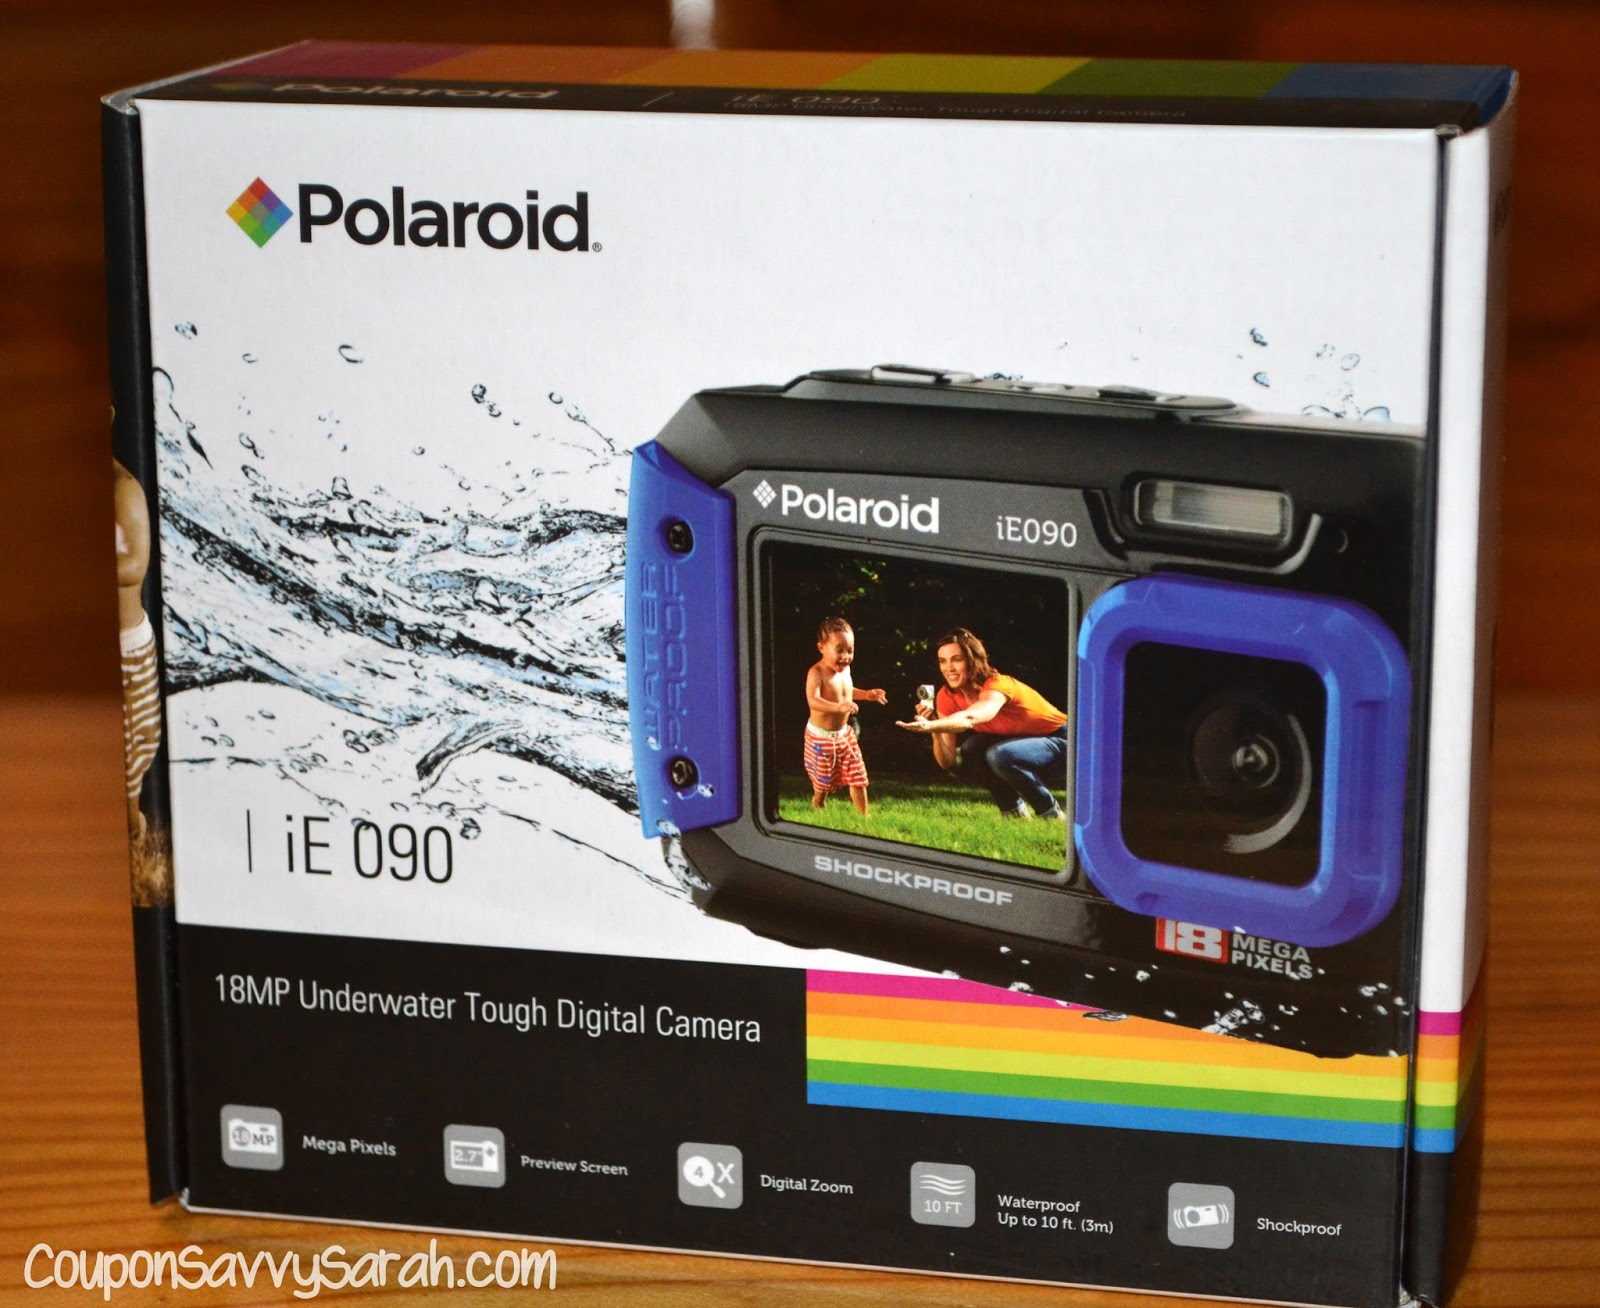 Coupon savvy sarah last minute gift idea for everyone the my daughter and i share a love a photography and we are always taking pictures and being a blogger it comes with the job rose has been taking pictures negle Choice Image